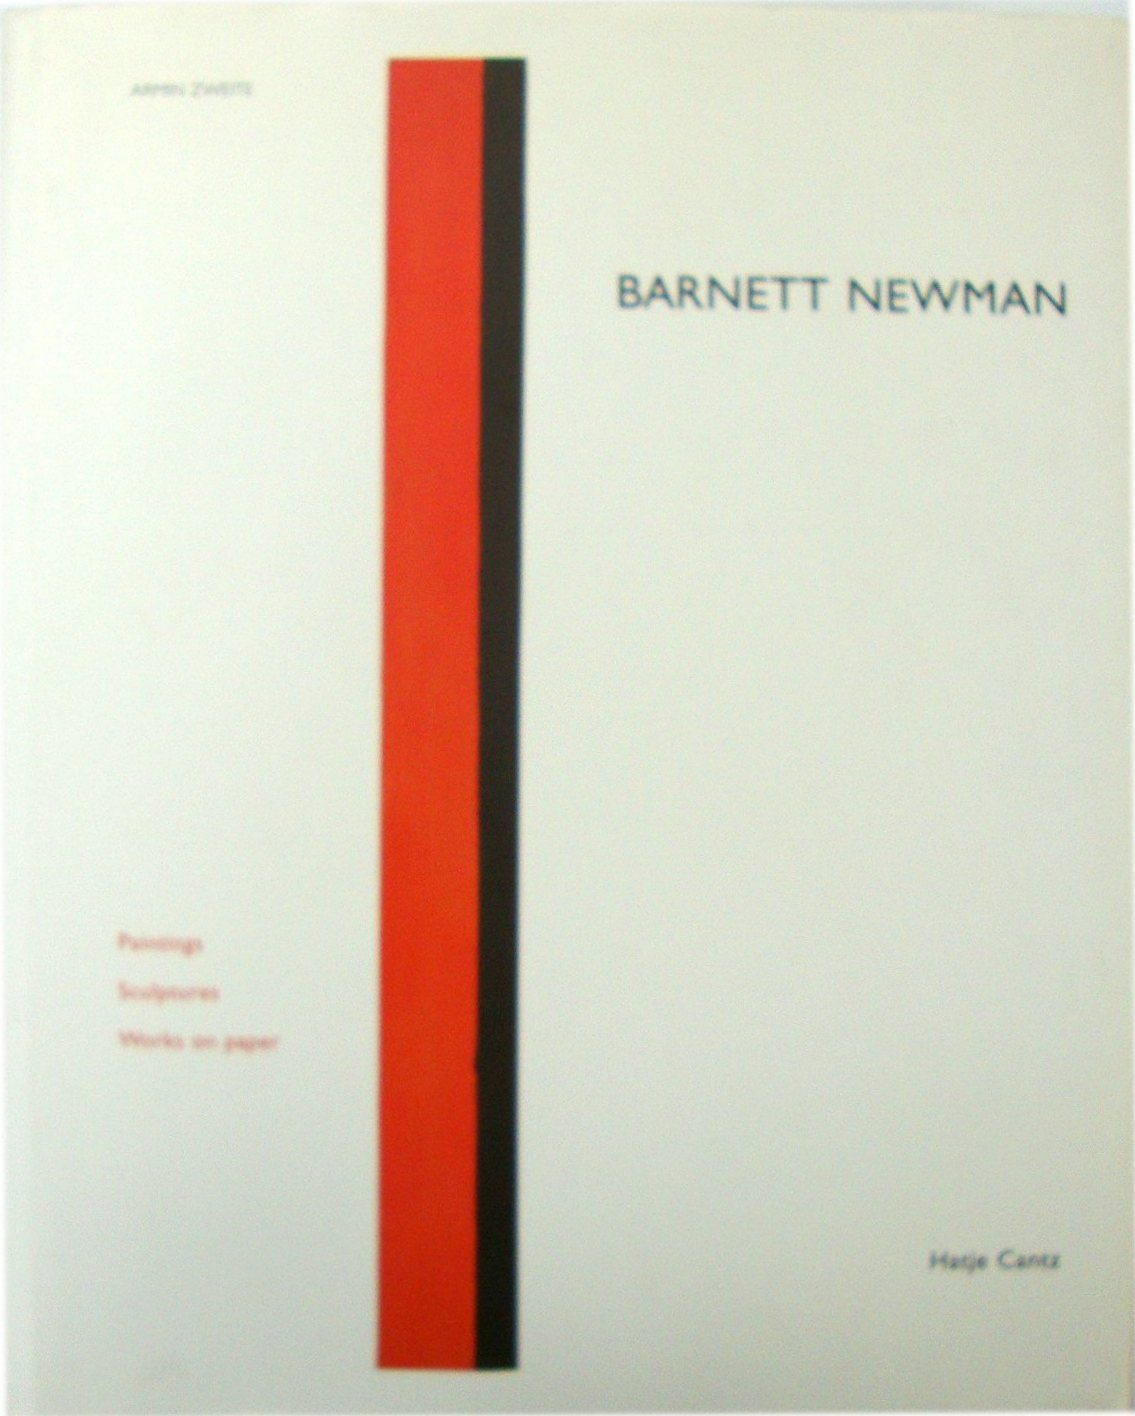 Image for Barnett Newman: Paintings, Sculptures, Works on Paper